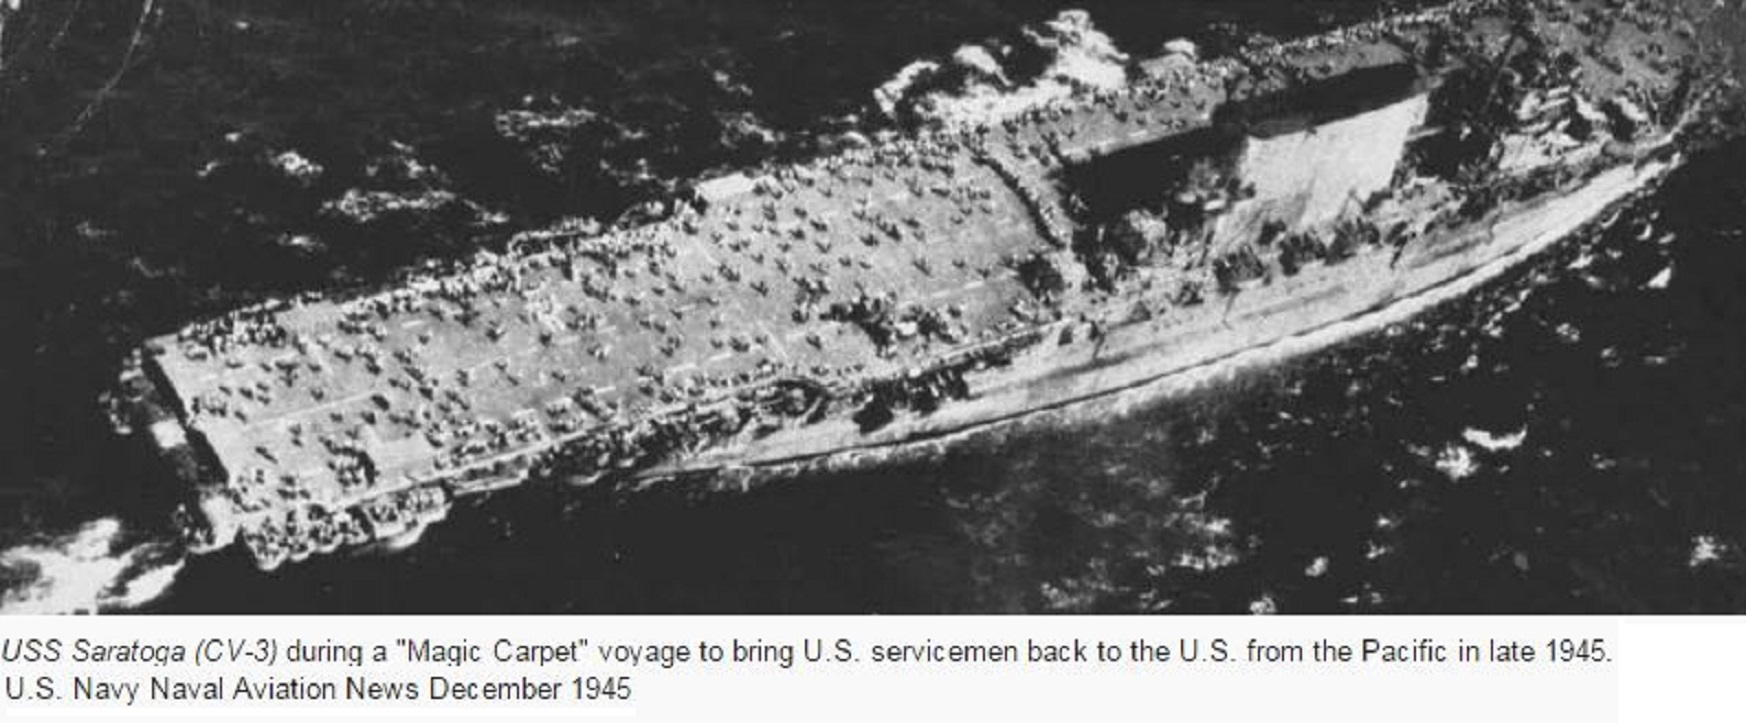 USS SARAGOTA MAGIC CARPET PETIT-DIEULOIS